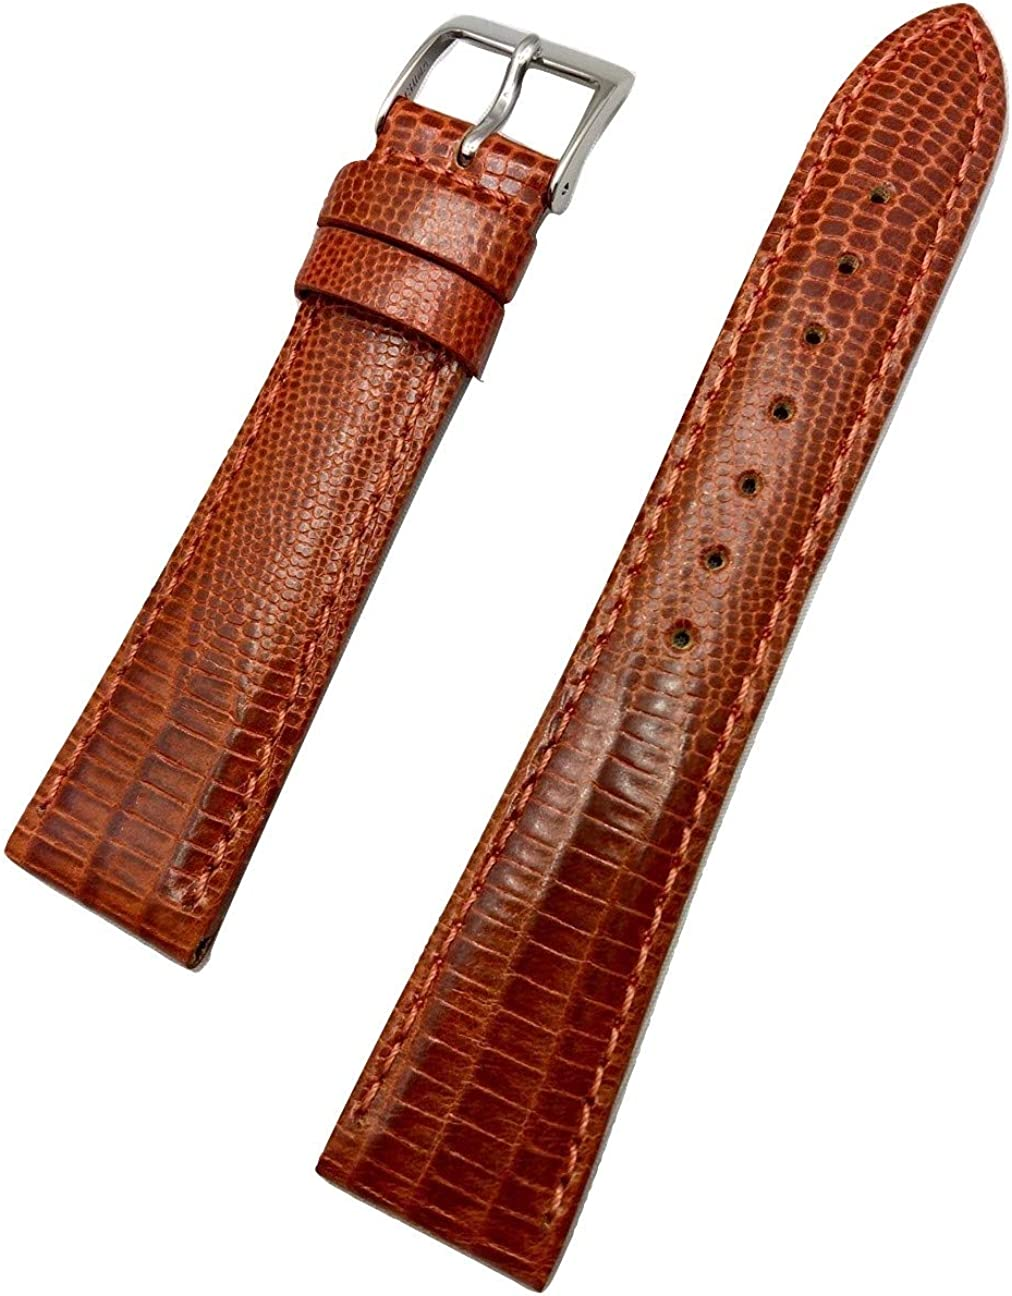 20mm Bronze/Honey Brown Genuine Leather Watch Band | Teju Lizard Grained, Lightly Padded Replacement Wrist Strap that brings New Life to Any Watch (Mens Standard Length)